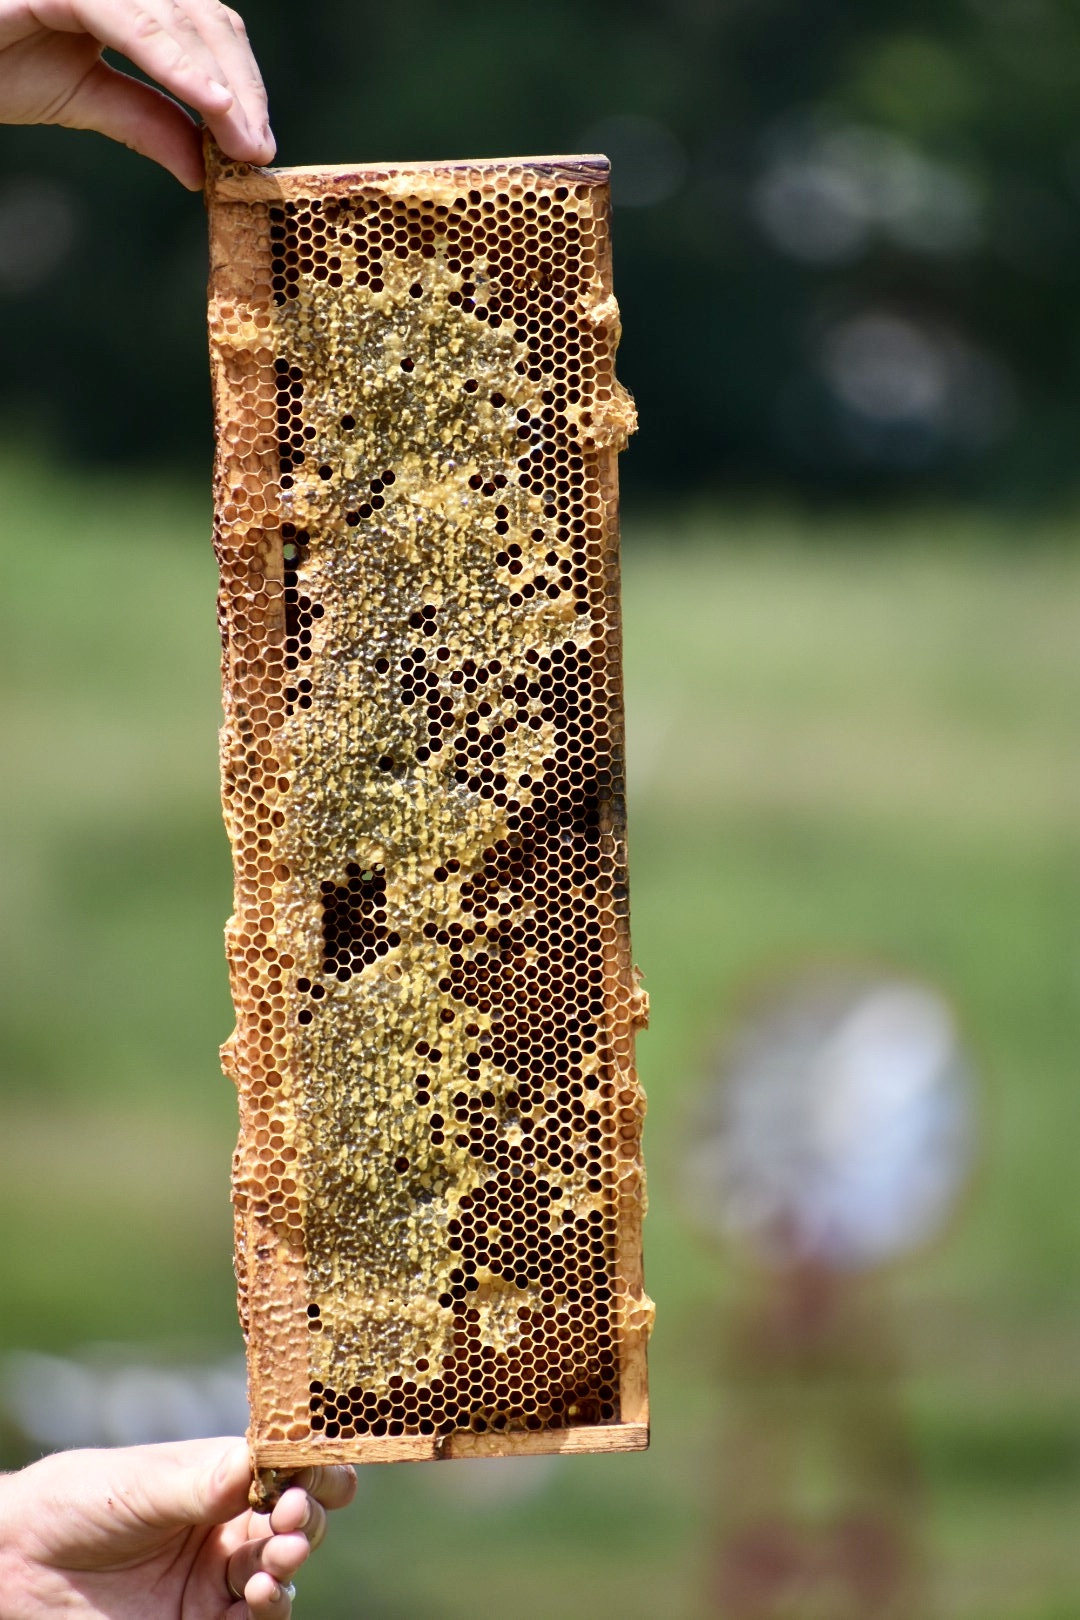 Host A Hive Frames